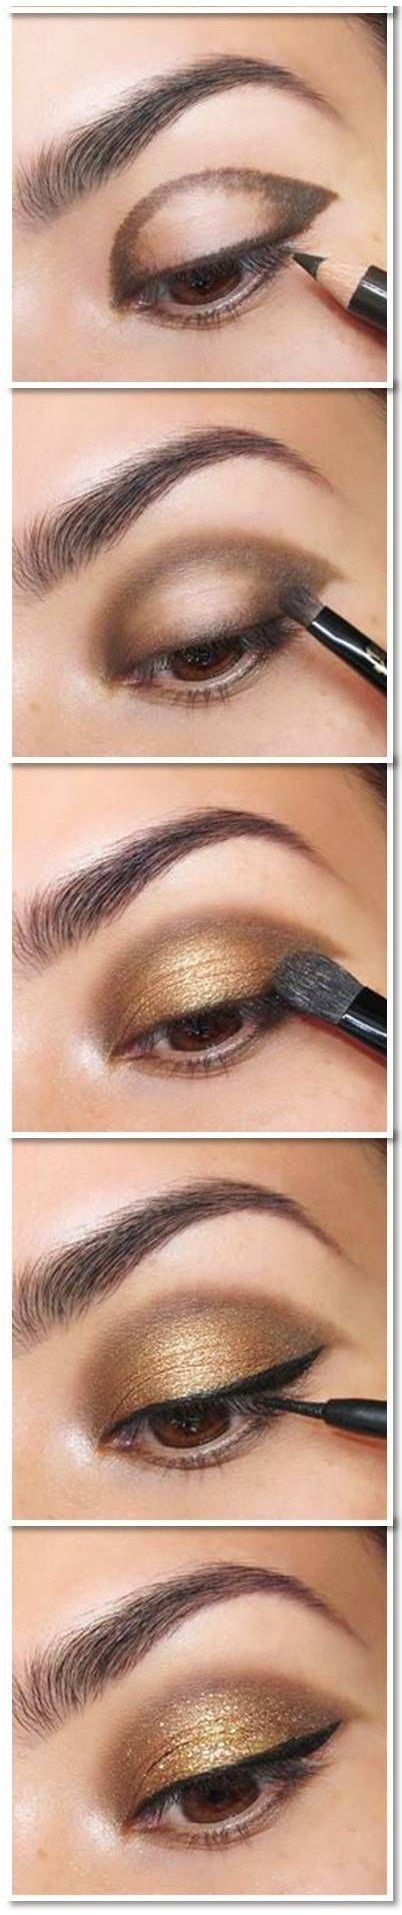 Gold Smoky Eye MakGold Smoky Eye Makeup Tutorial - Head over to Pampadour.com for product suggestions! Pampadour.com is a community of beauty bloggers, professionals, brands and beauty enthusiasts! Think I'd like a dk brown for liner...it would all have blended better...the eyeliner stands out a little bit too much here! by bbooky #glittereyeliner